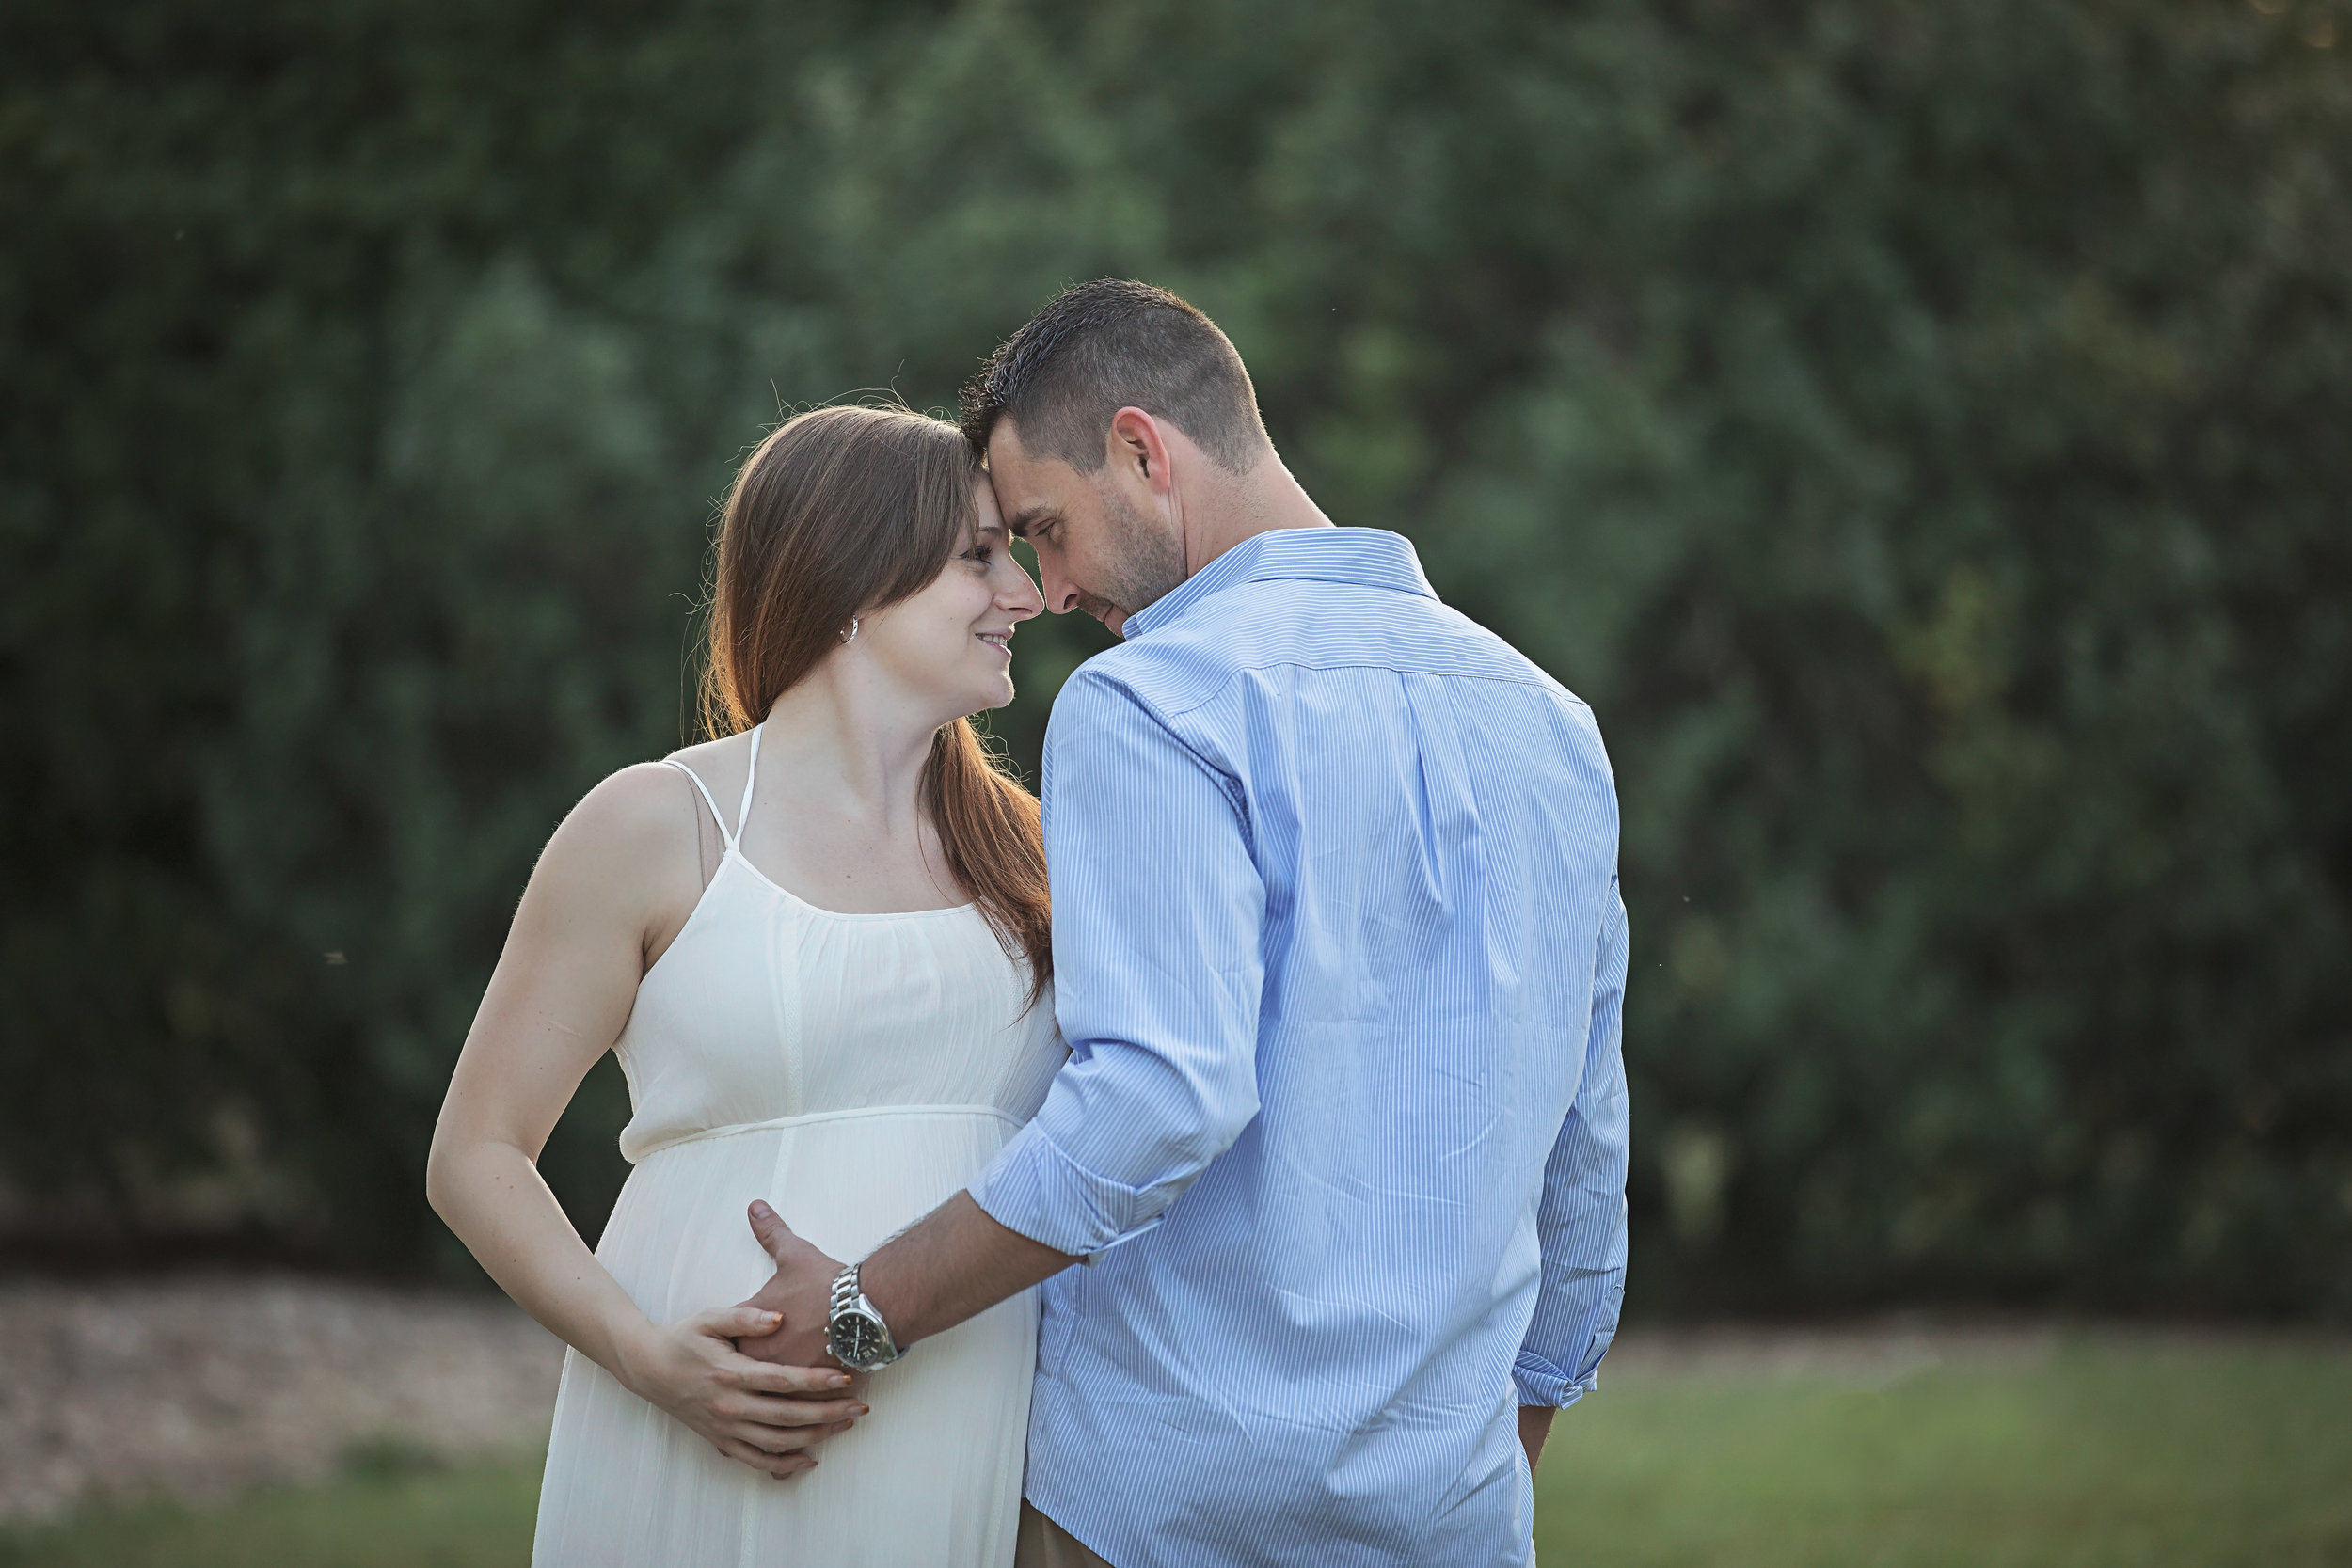 Husband and wife touching foreheads at maternity photoshoot in Oklahoma City.